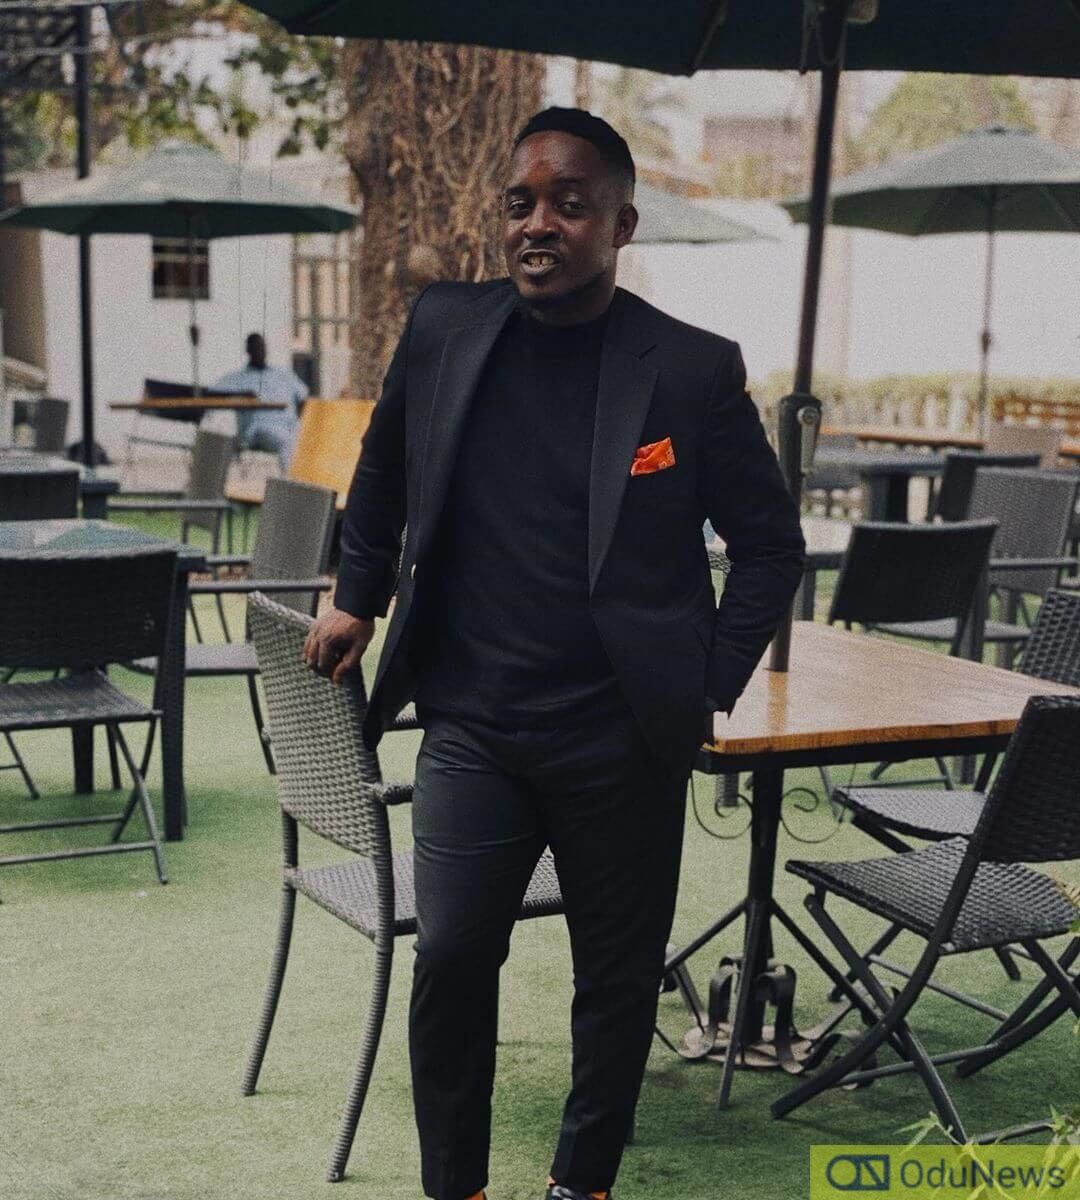 M.I. Abaga assumed the role of Chocolate City CEO in 2015